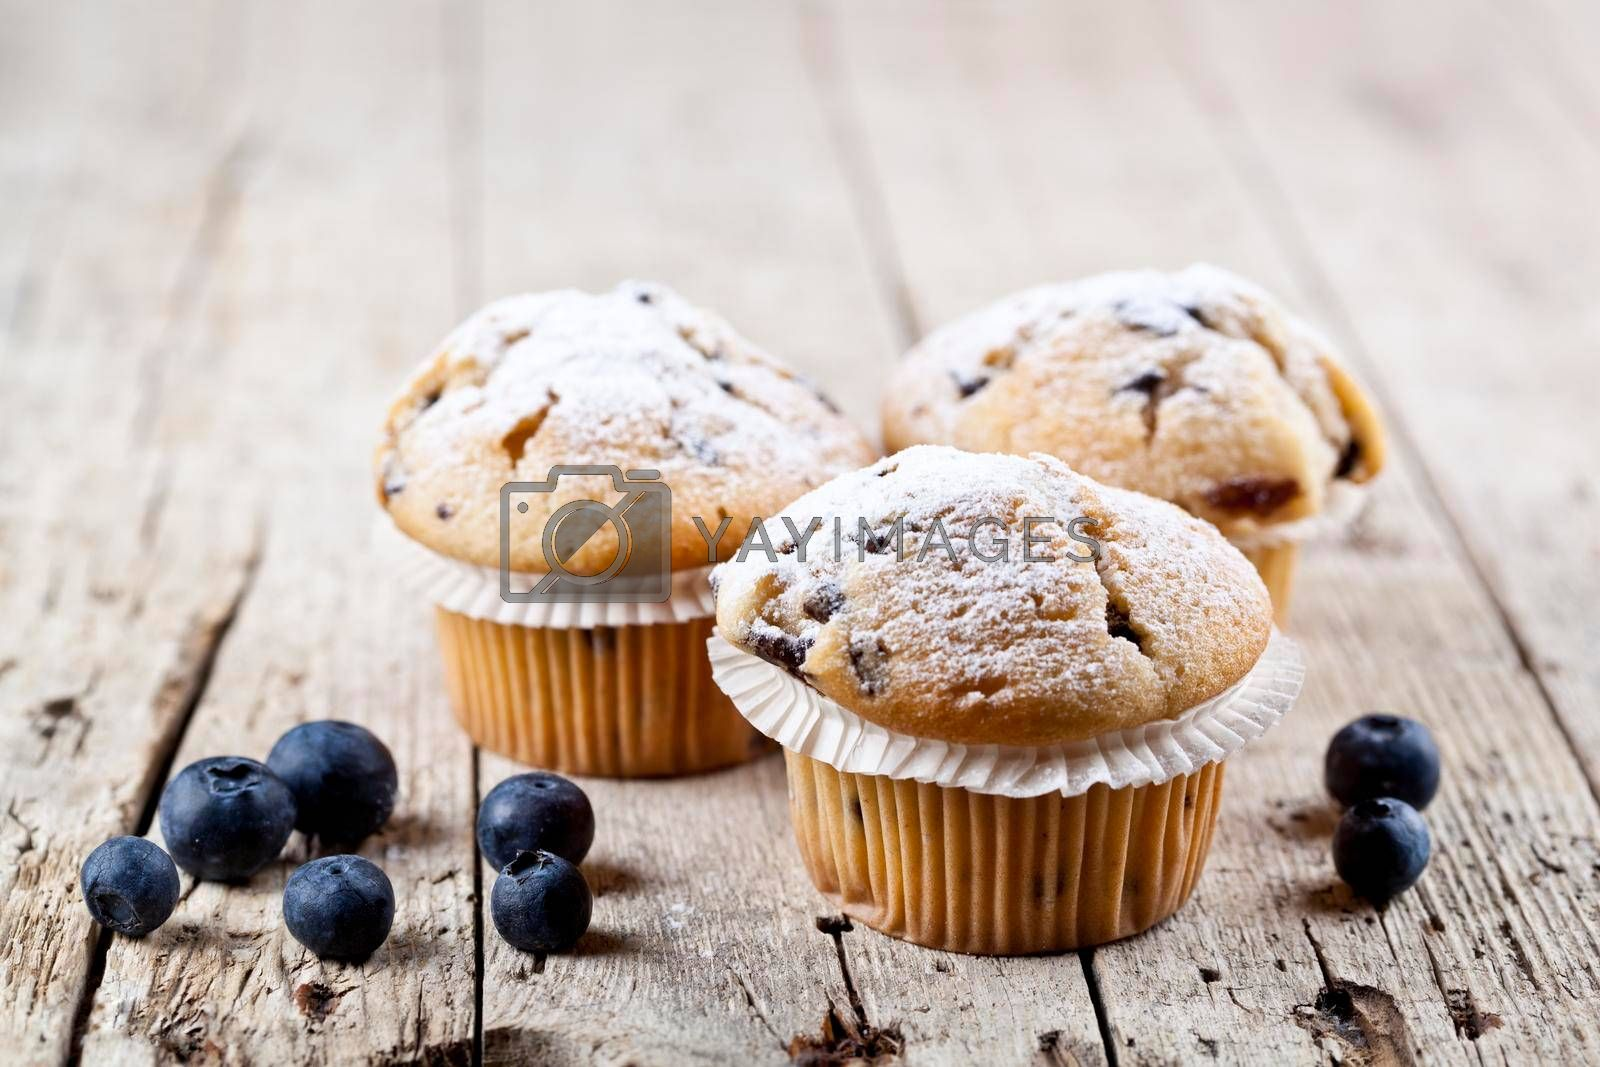 Three fresh baked homemade muffins with blueberries on rustic wooden table background.